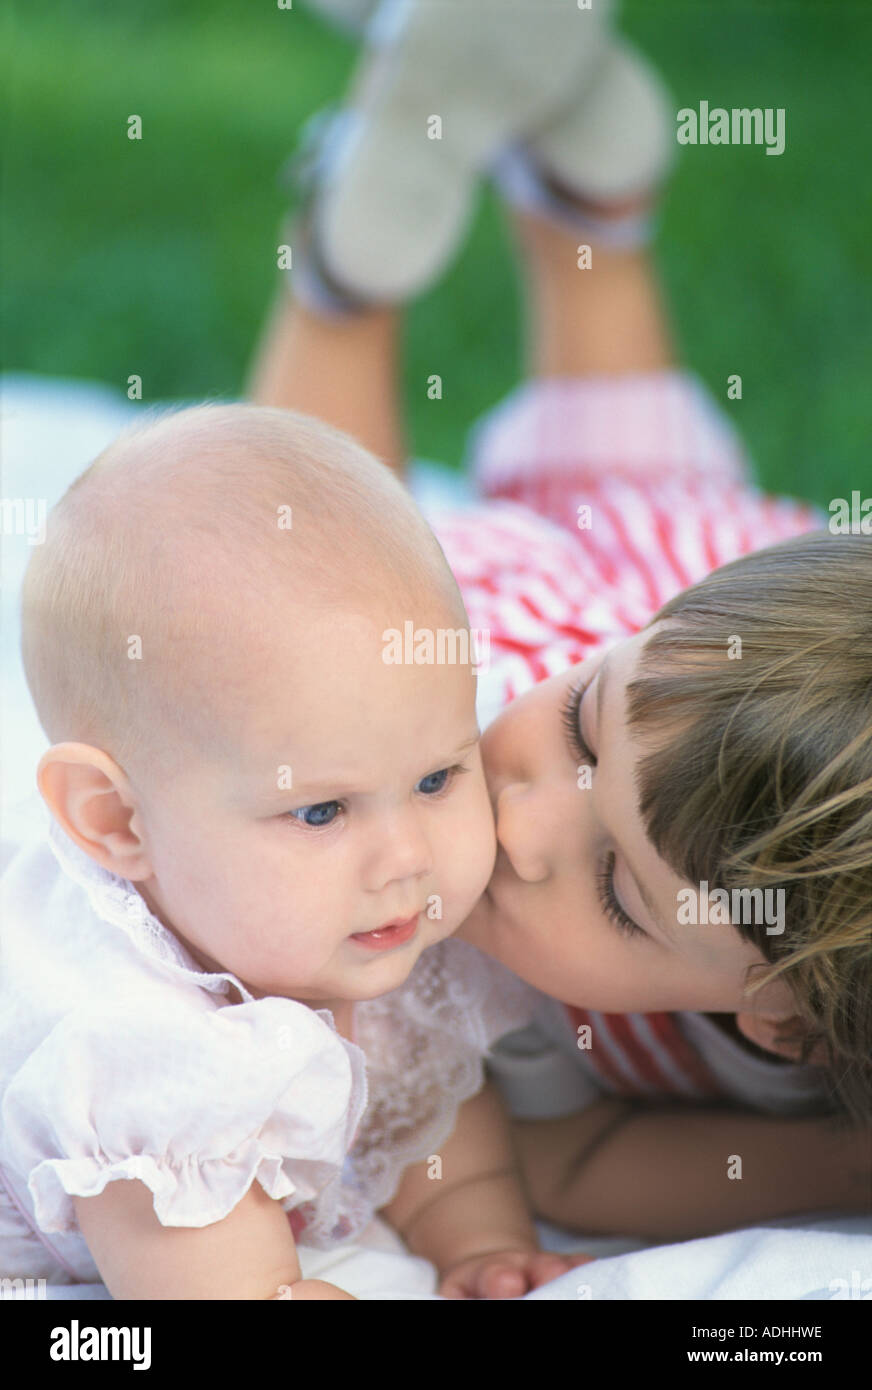 Two Loving Sisters Kiss Stock Photos  Two Loving Sisters Kiss Stock Images - Alamy-6967